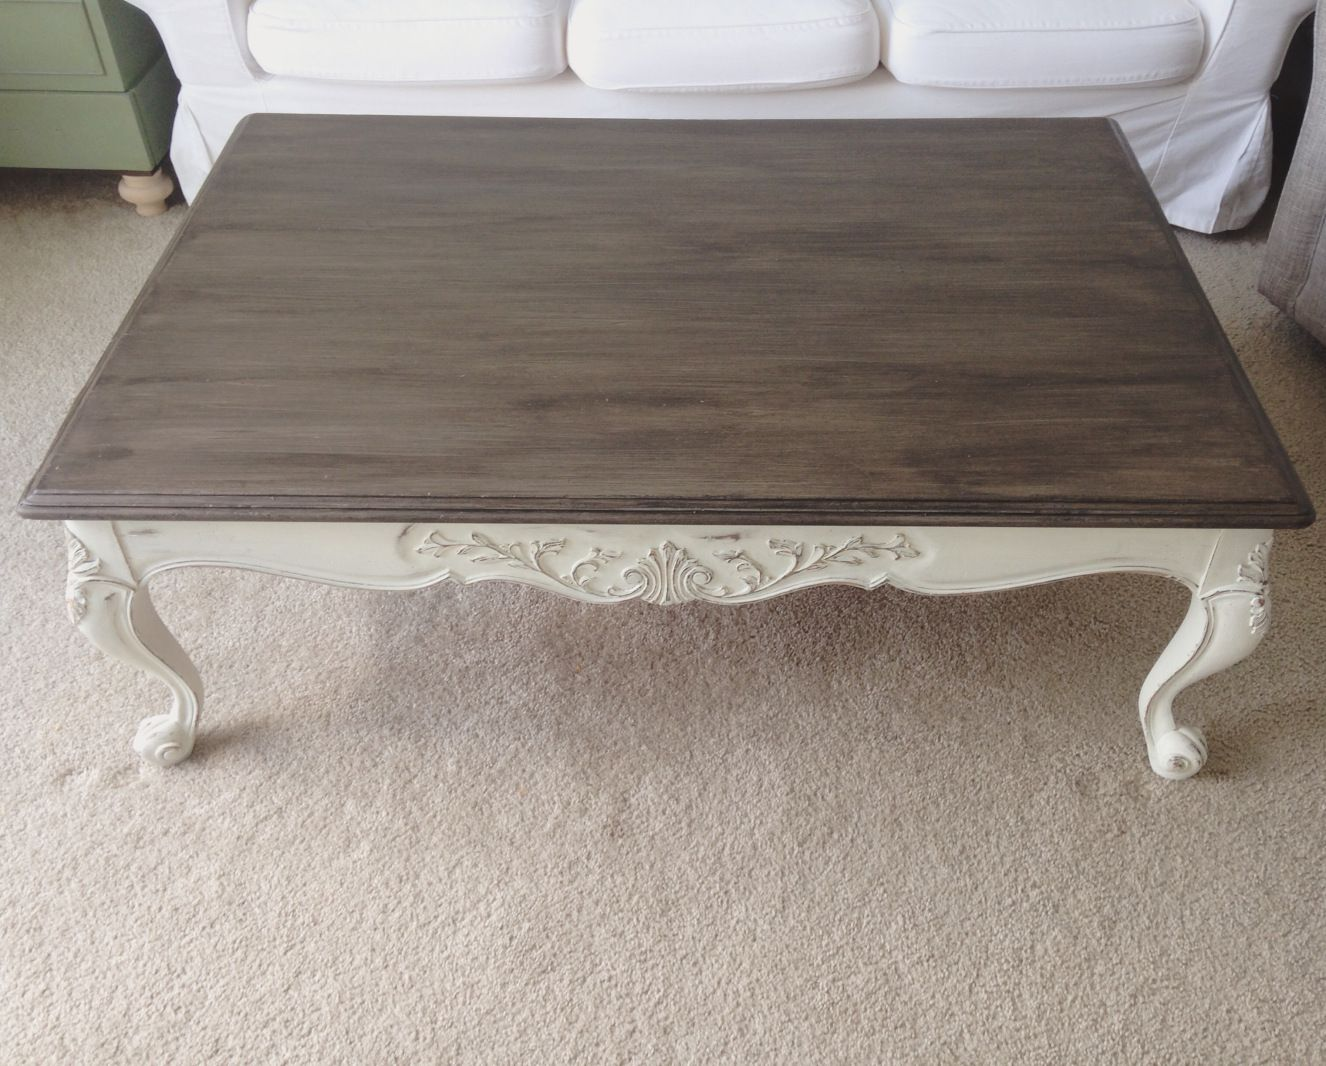 A Refreshed Coffee Table Top And All About Layering Gel Stain And Chalk Paint Coffee Table Wood Coffee Table Coffee Table Refinish